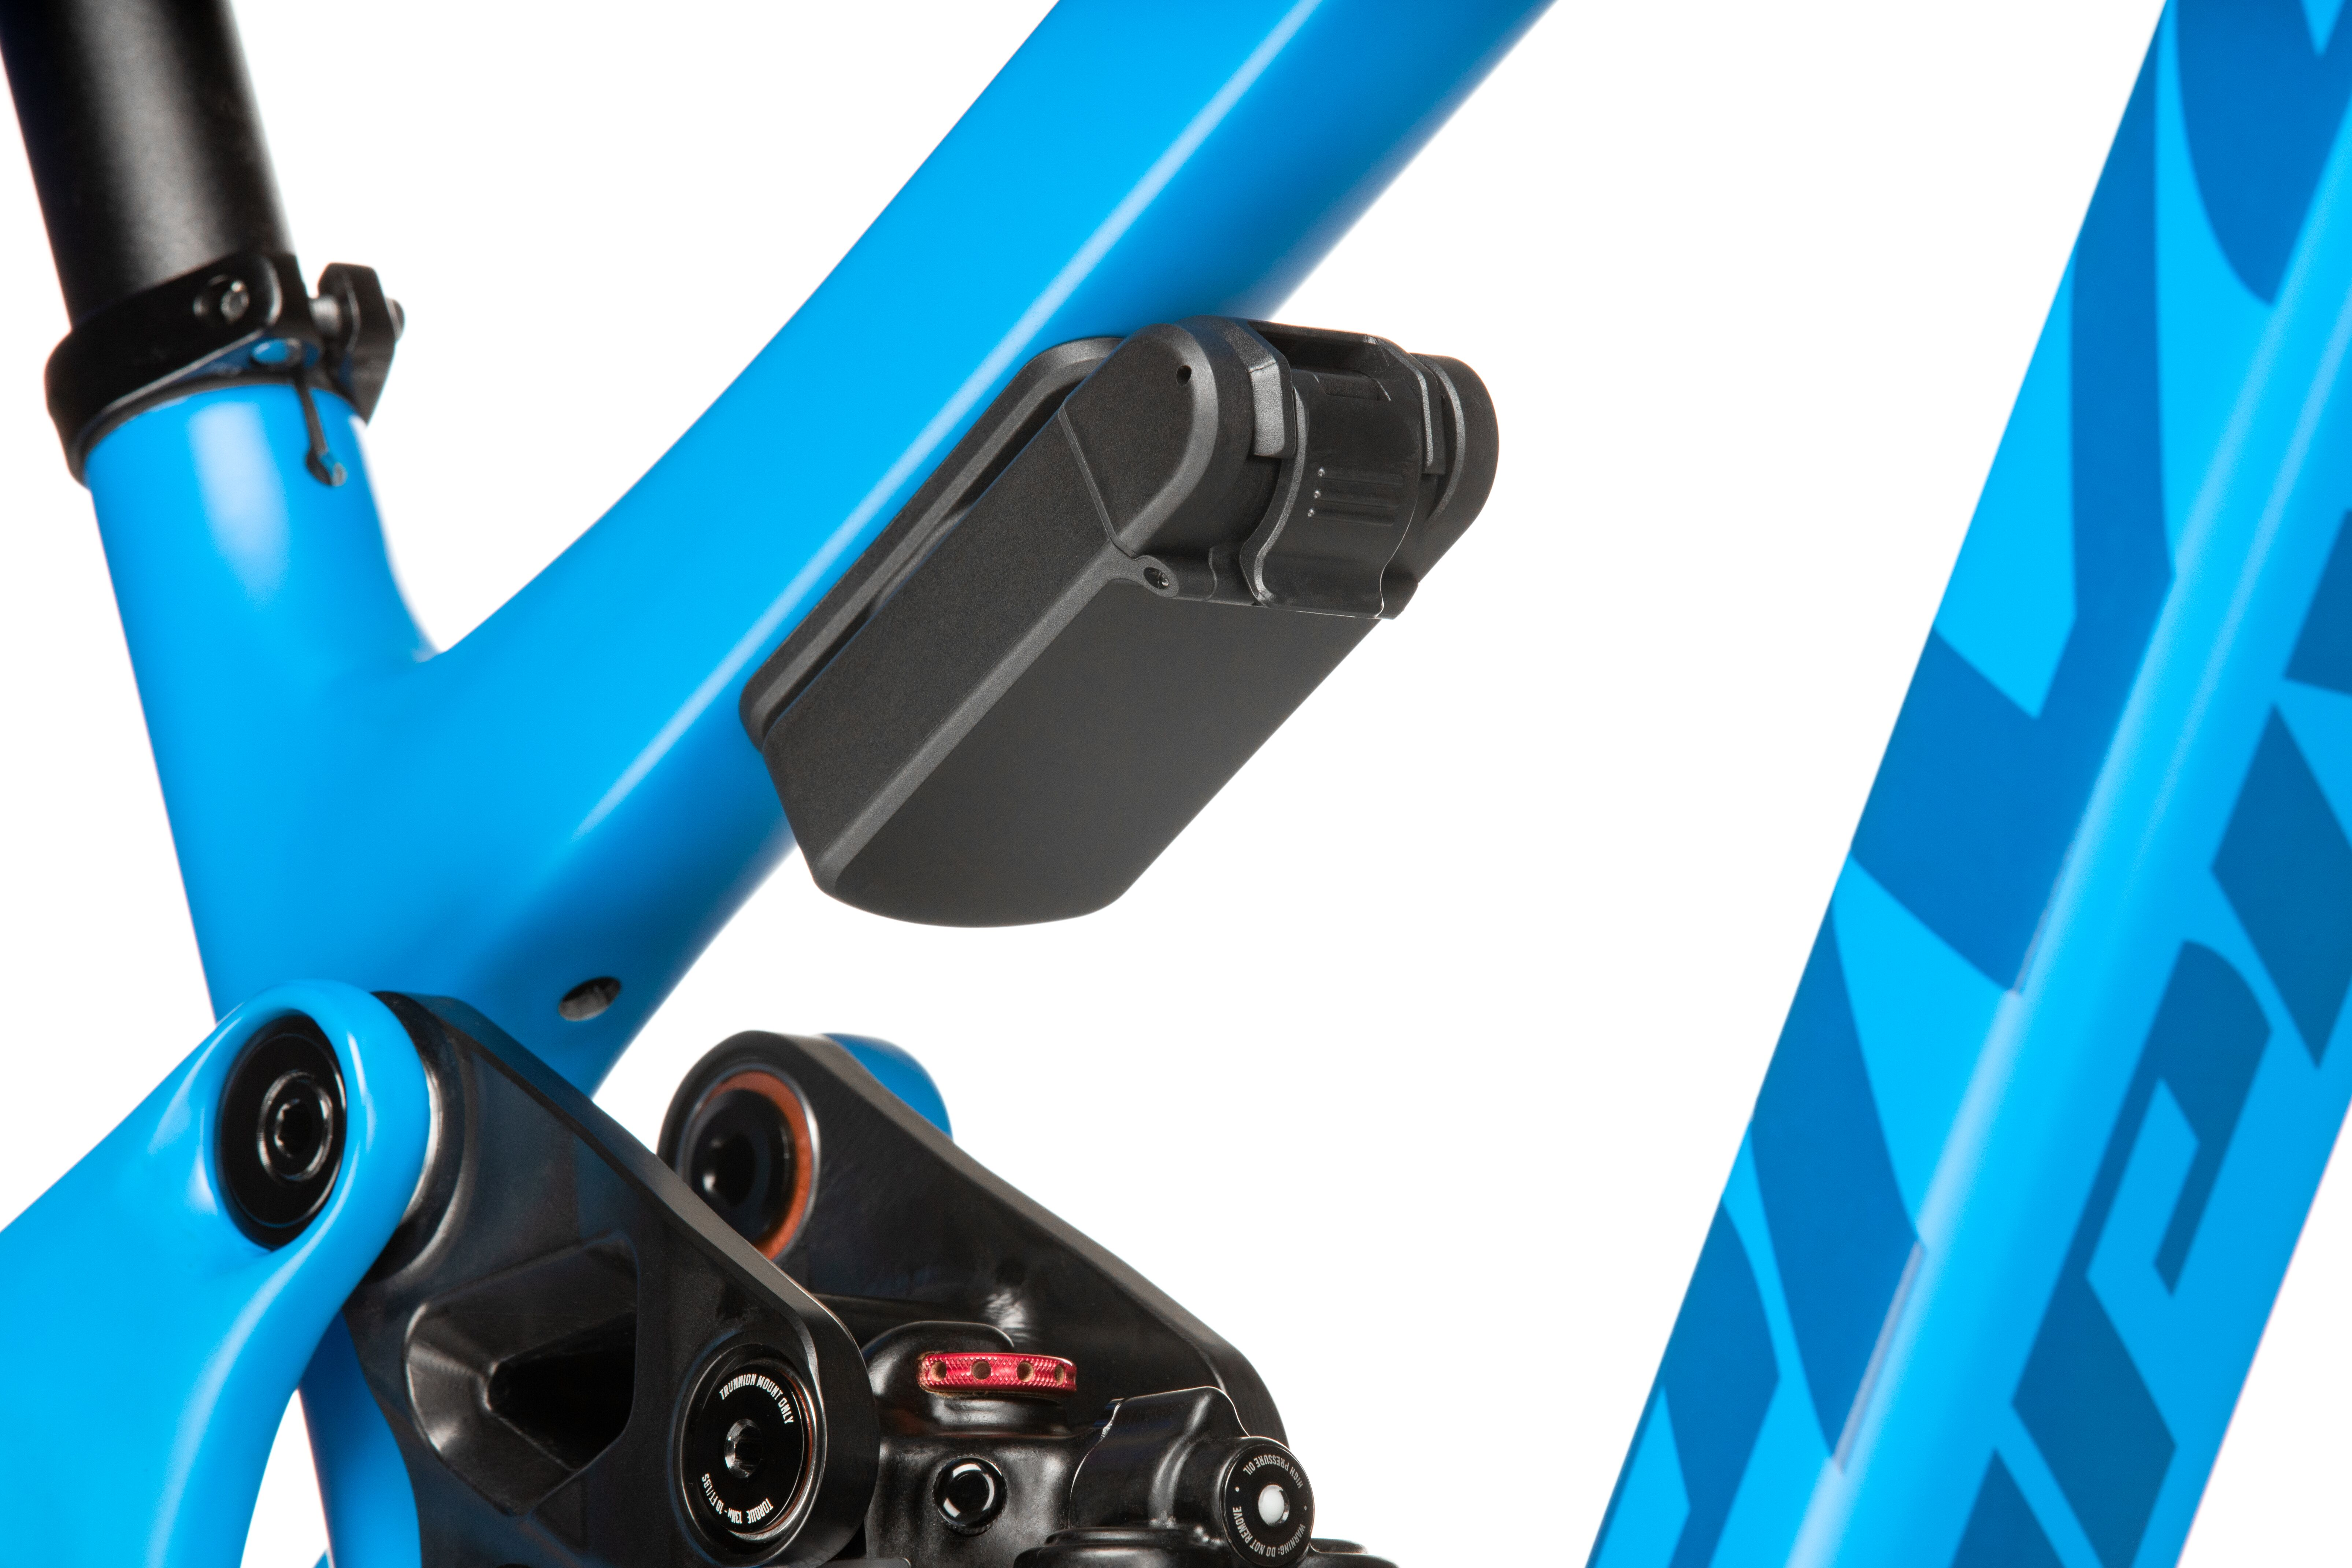 Pivot's new Phoenix Dock Tool System mounts to any bike with bottle cage bolts as well as the accessory mounts that are found on many new mounts bikes this season.